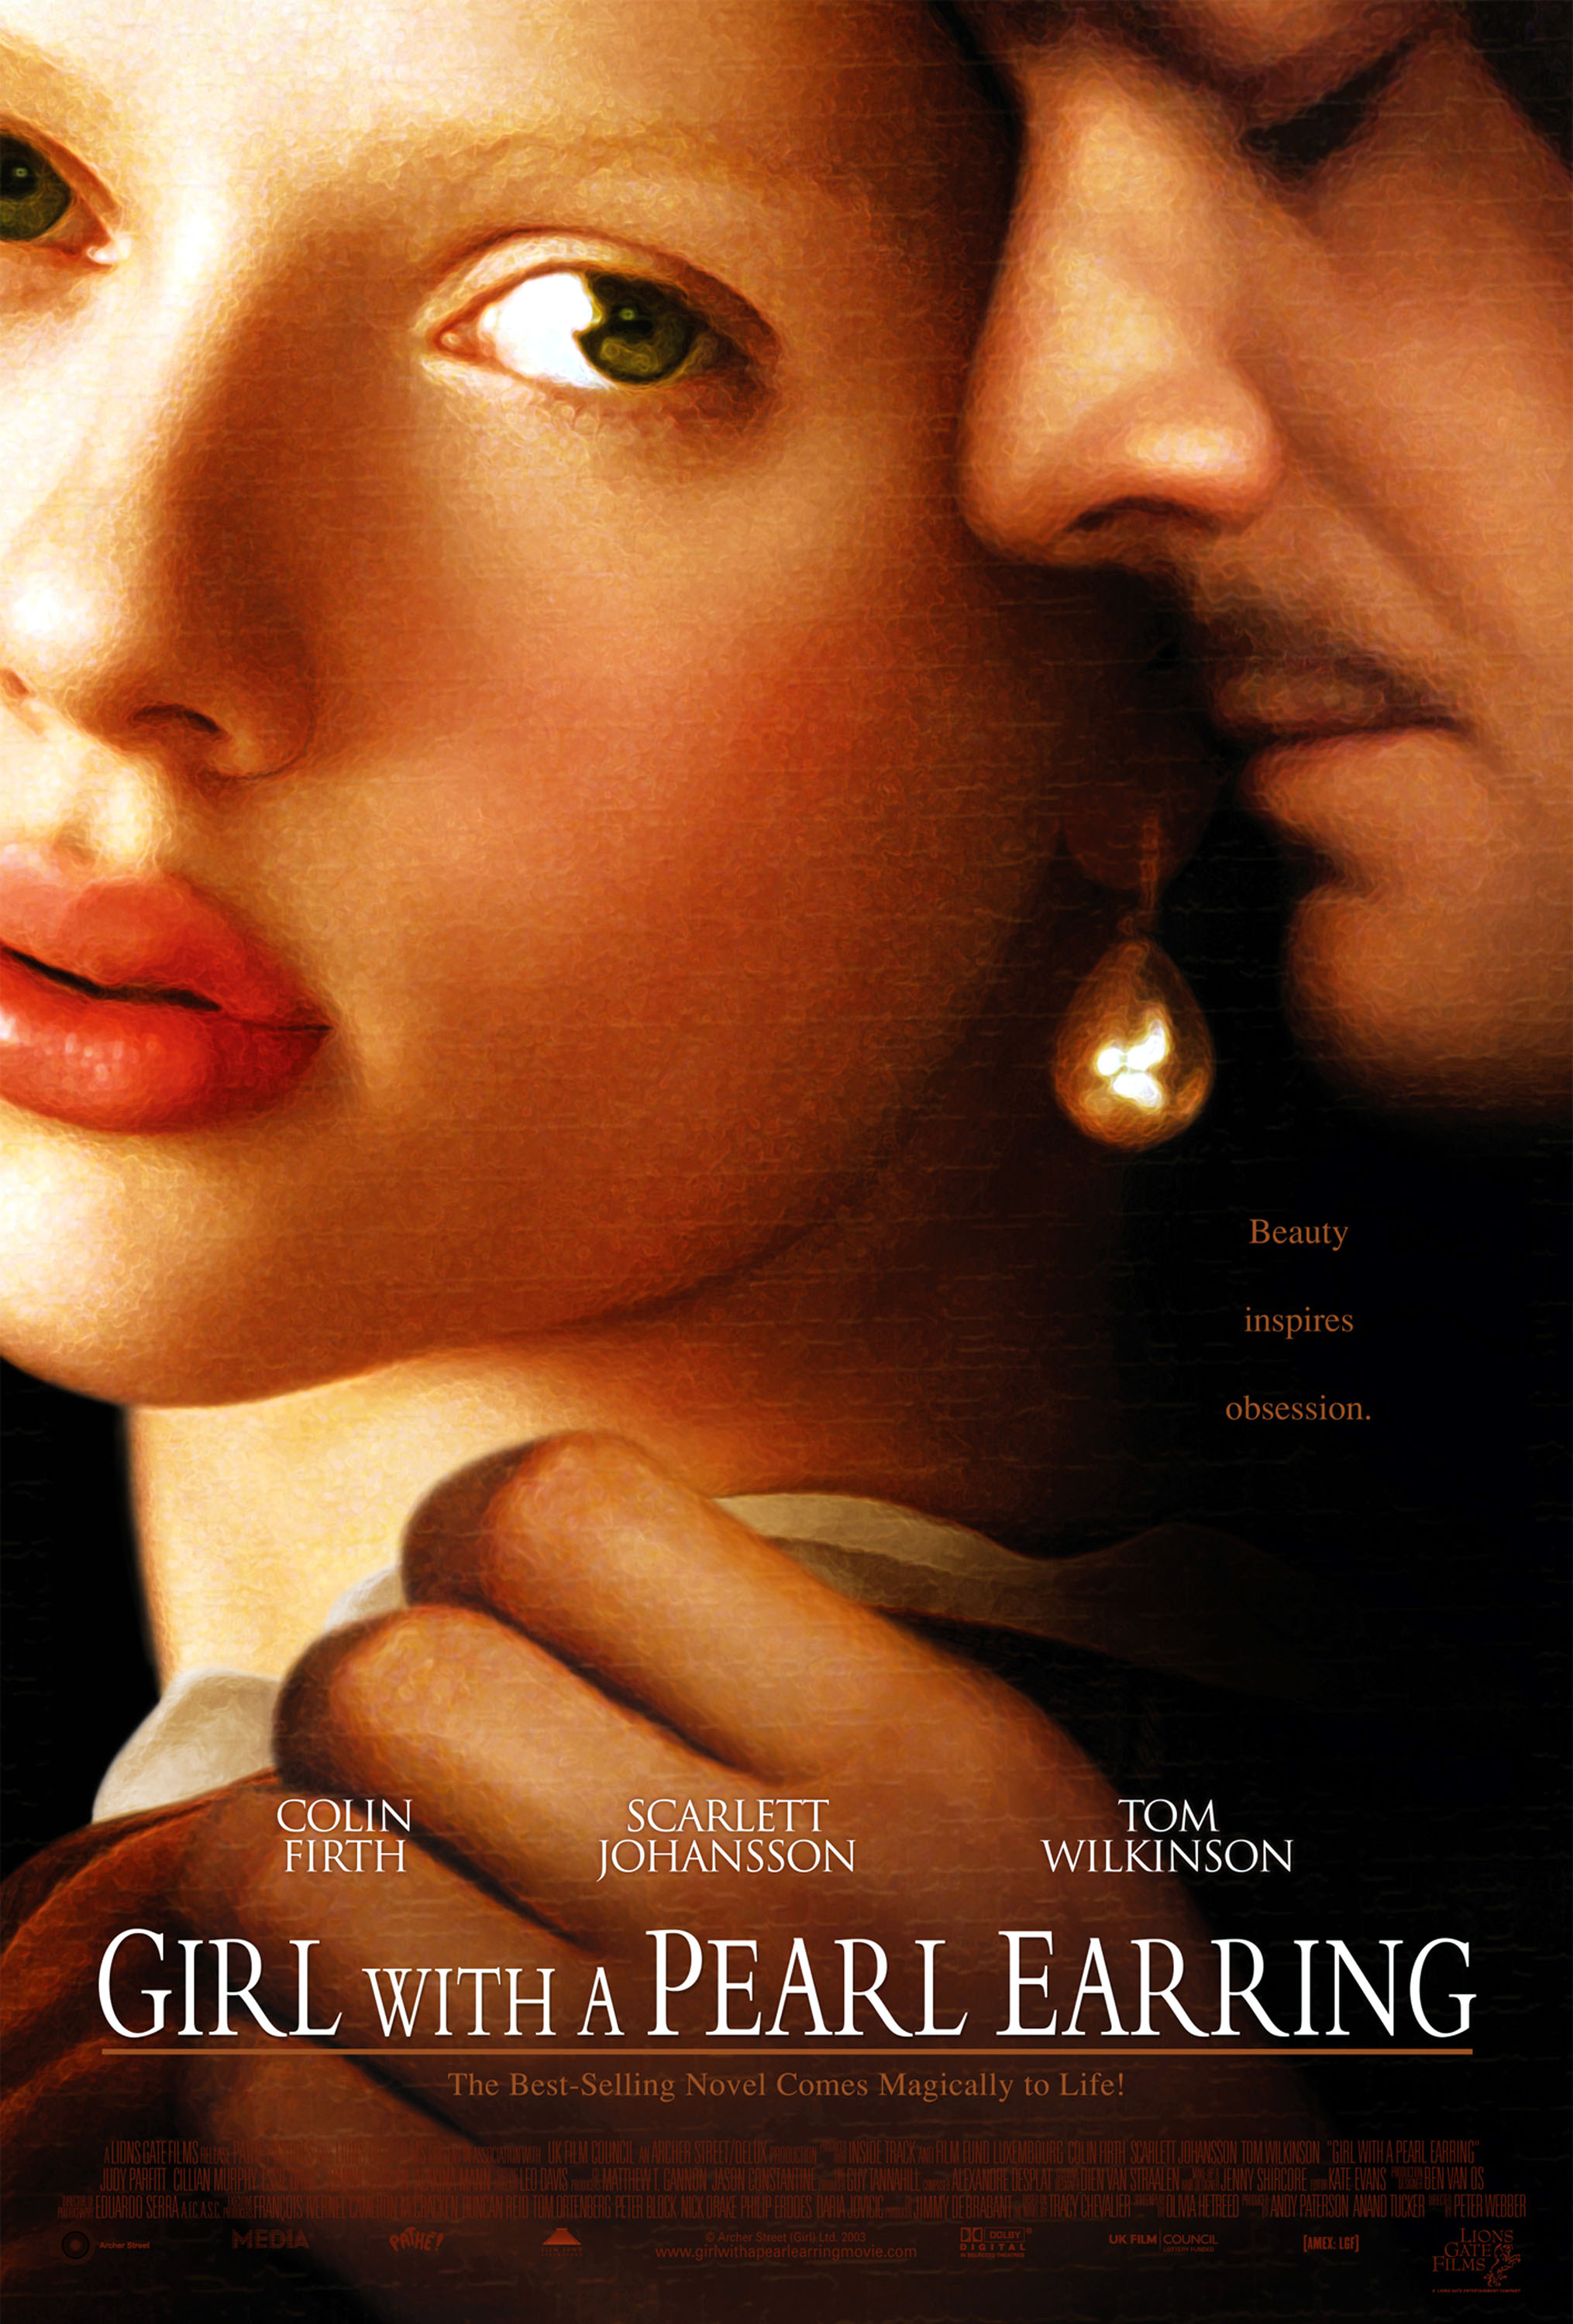 Film poster of Girl with pearl earring